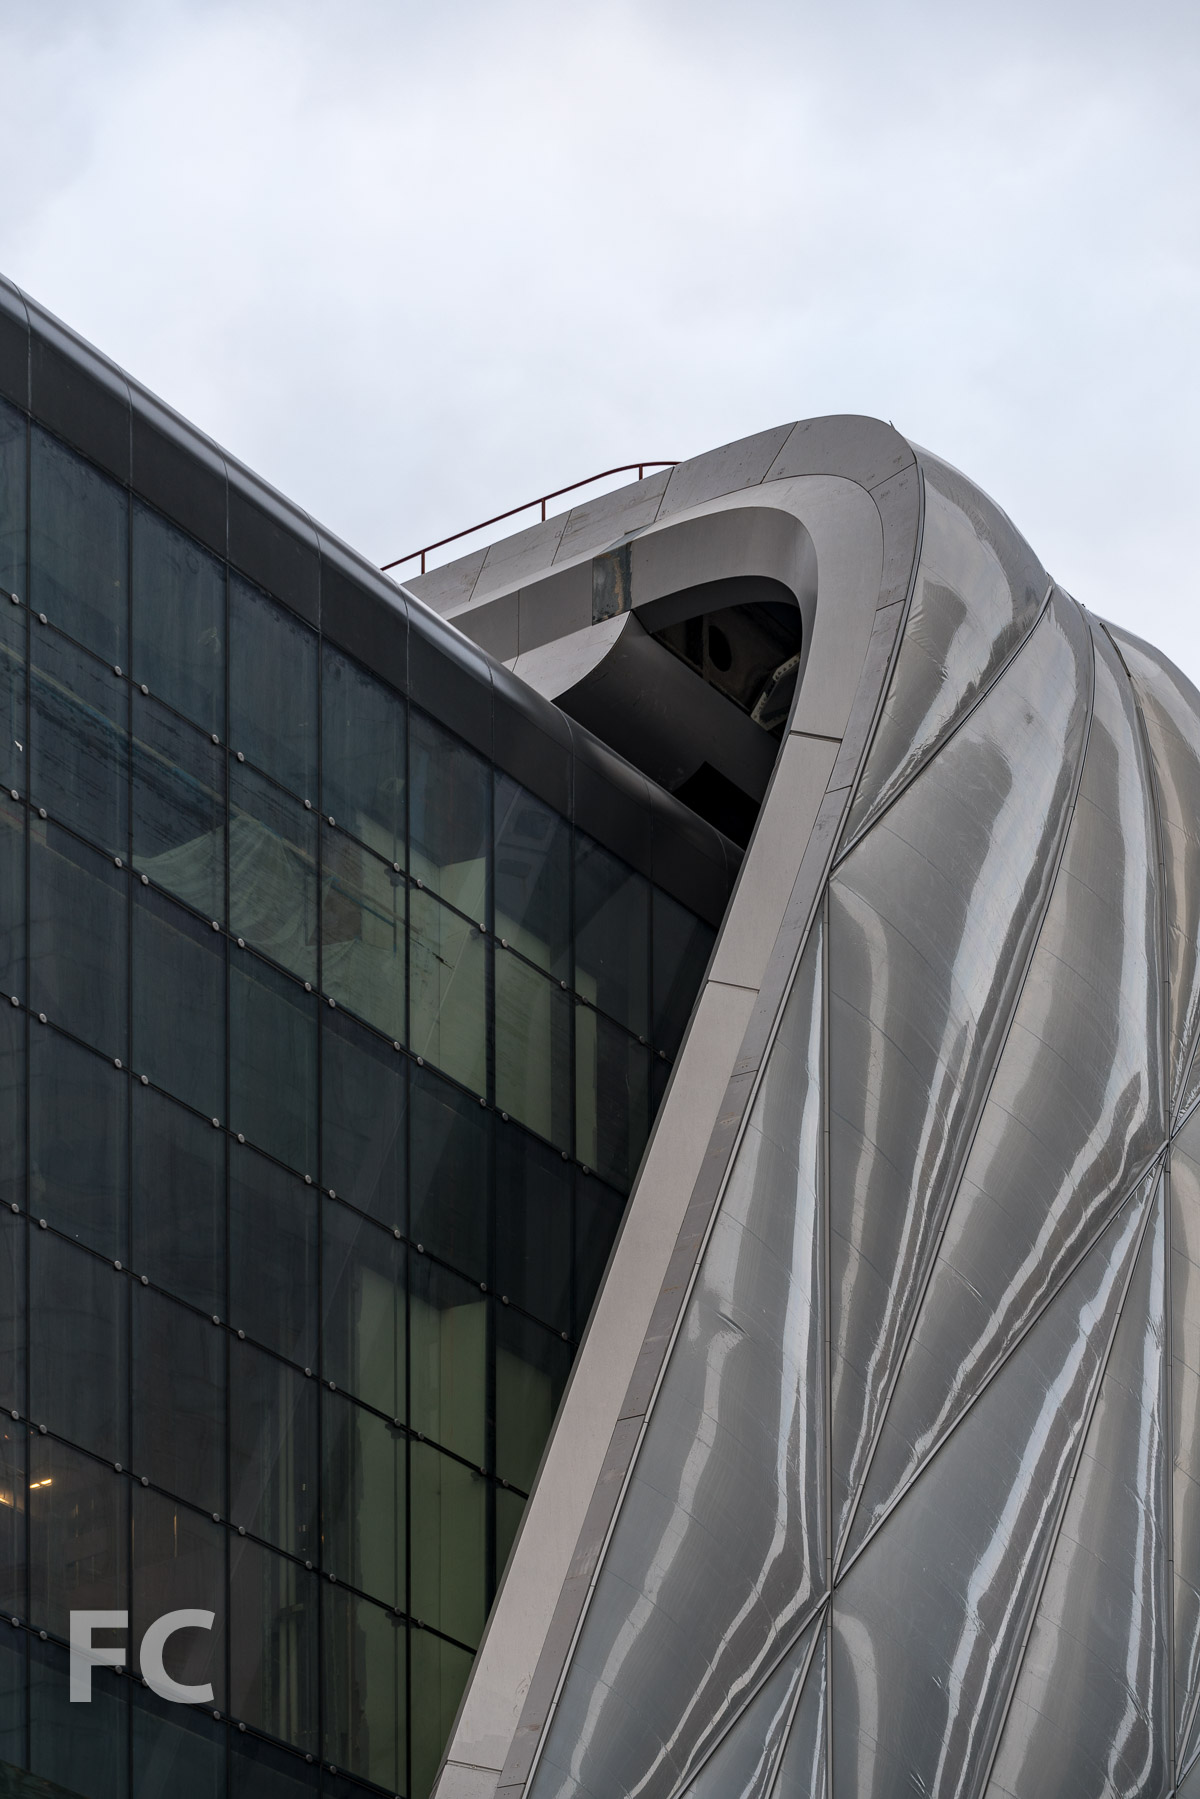 Detail of the ETFE facade of The Shed.